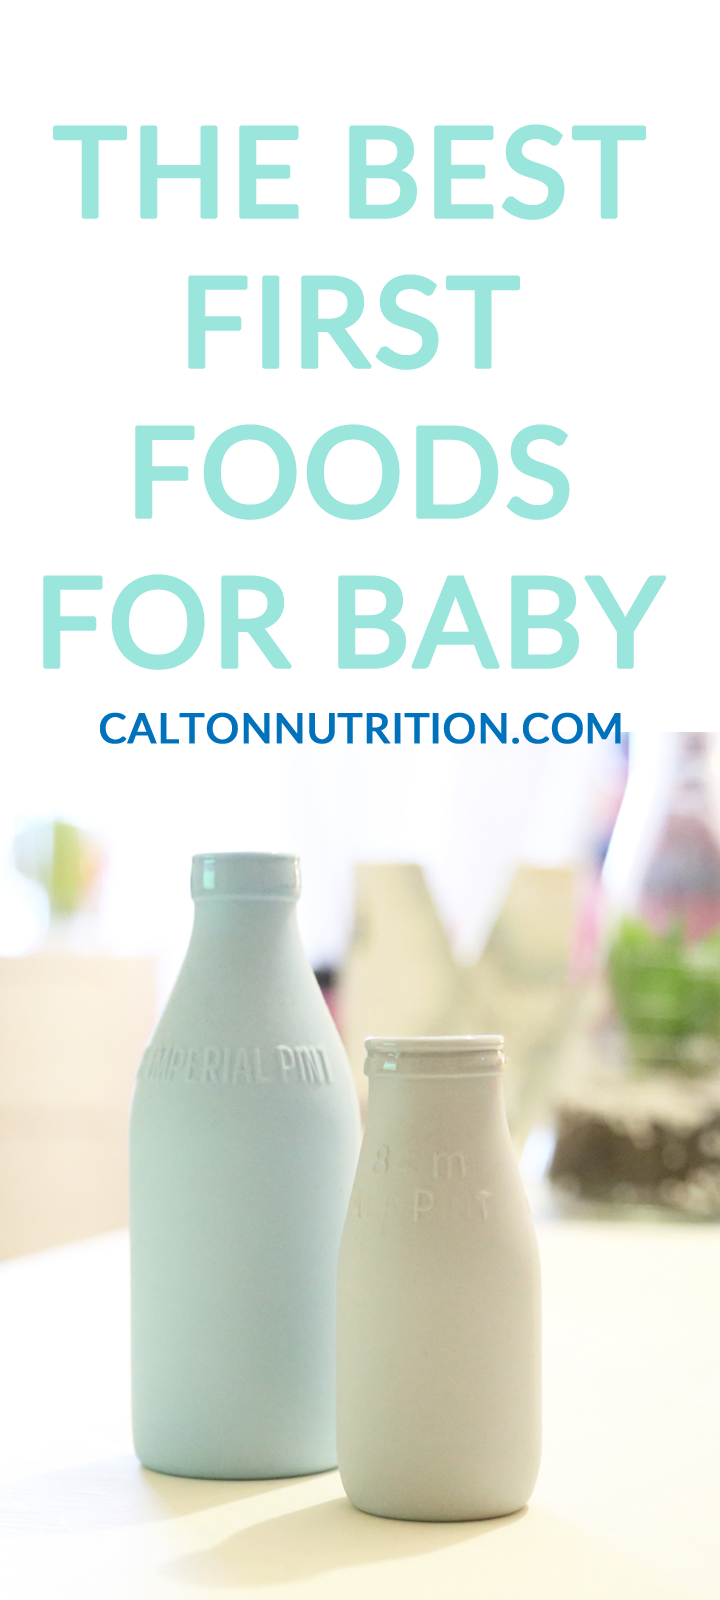 What is best after breast? | Best first foods for babies CaltonNutrition.com @caltonnutrition